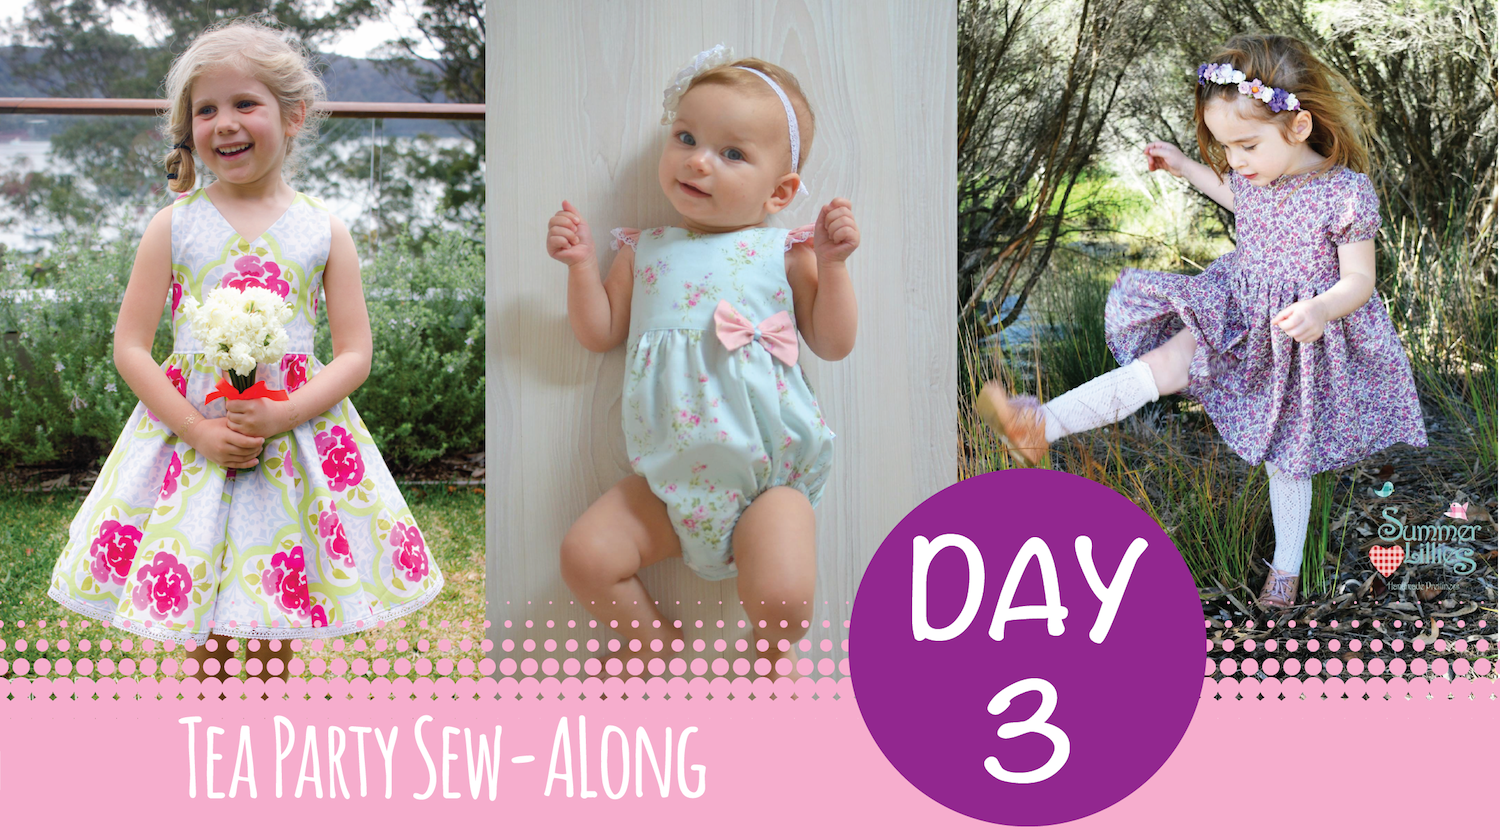 Tadah Tea Party Sew Along - Day 3